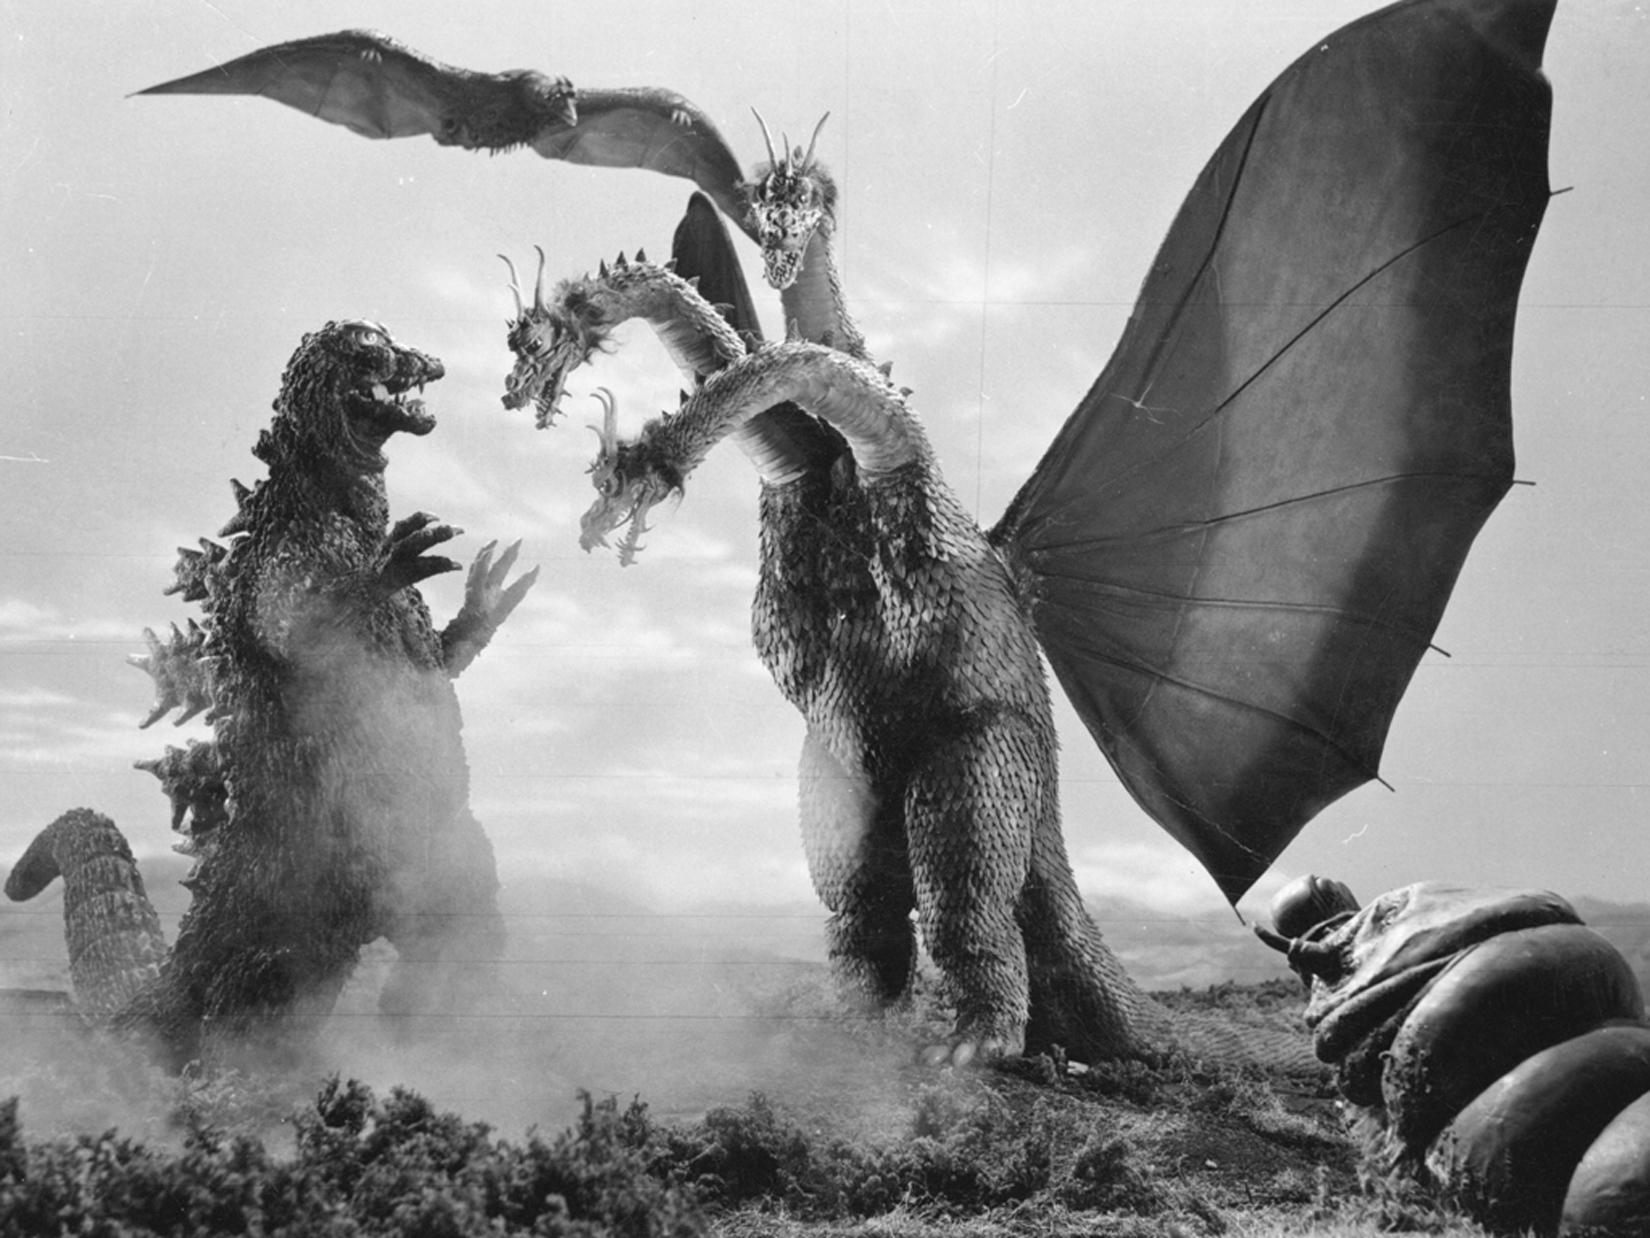 Godzilla, Rodan, and Mothra defeat King Ghidorah.